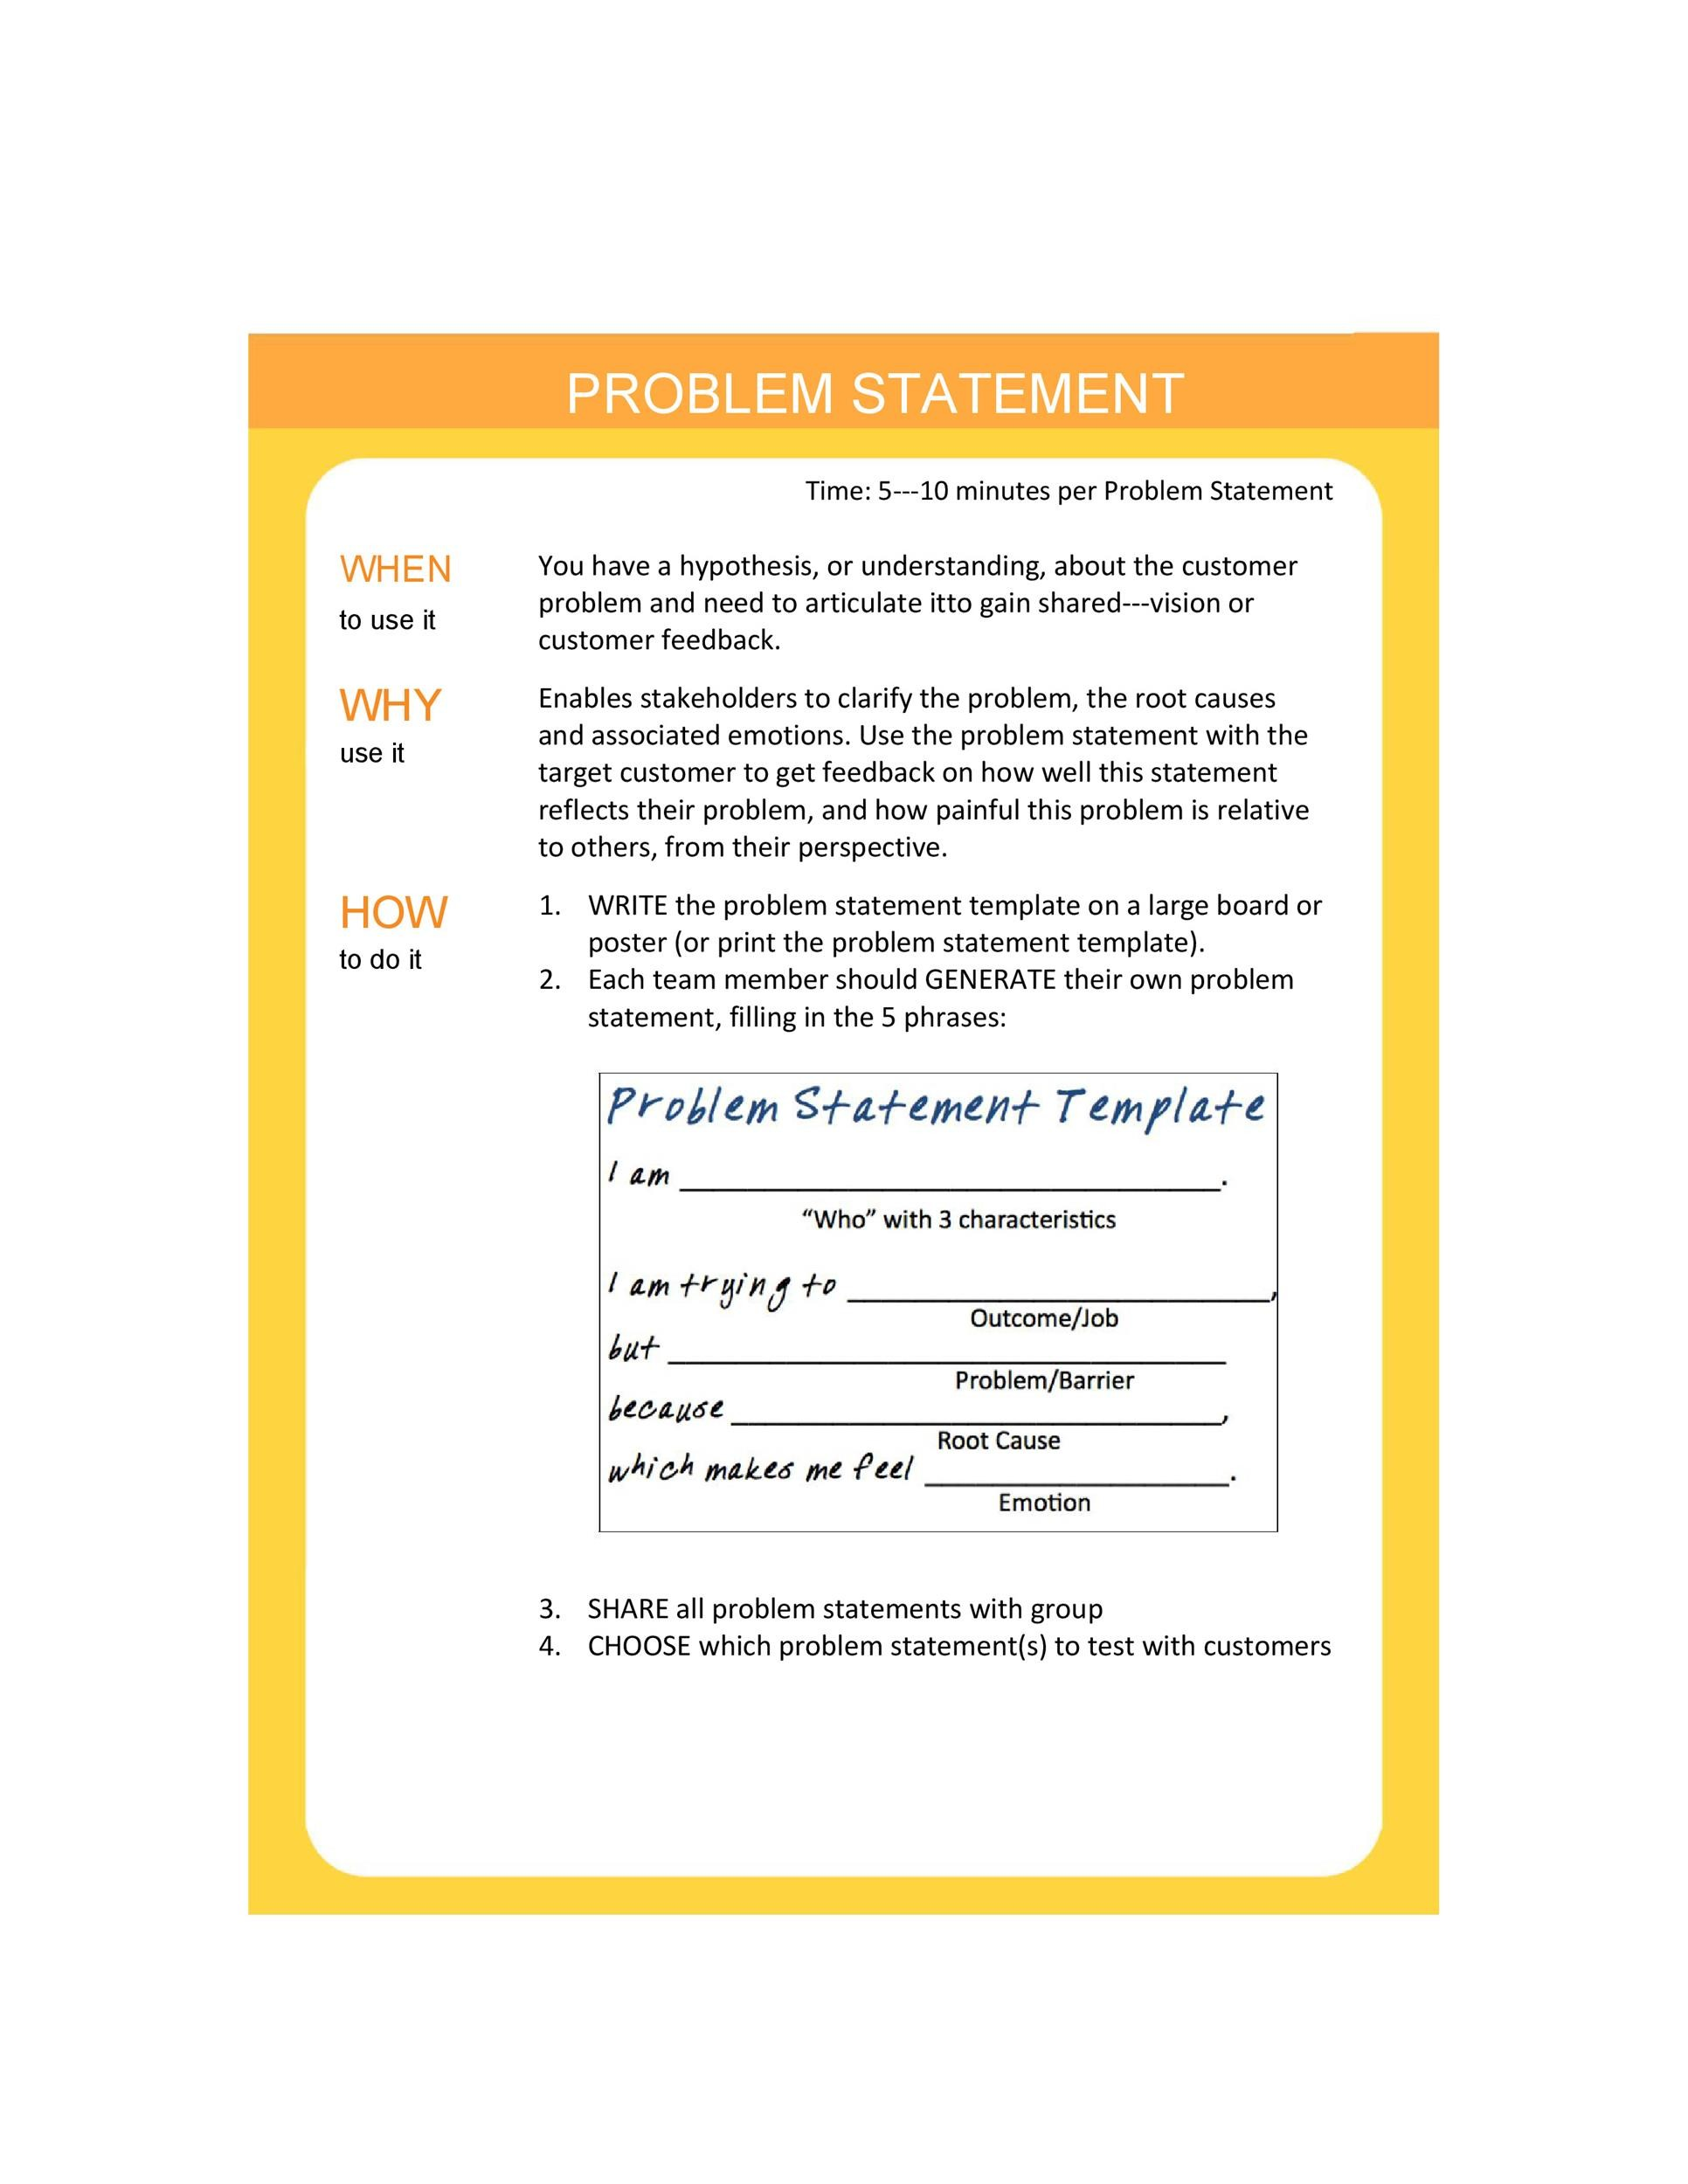 50 Printable Problem Statement Templates Ms Word ᐅ